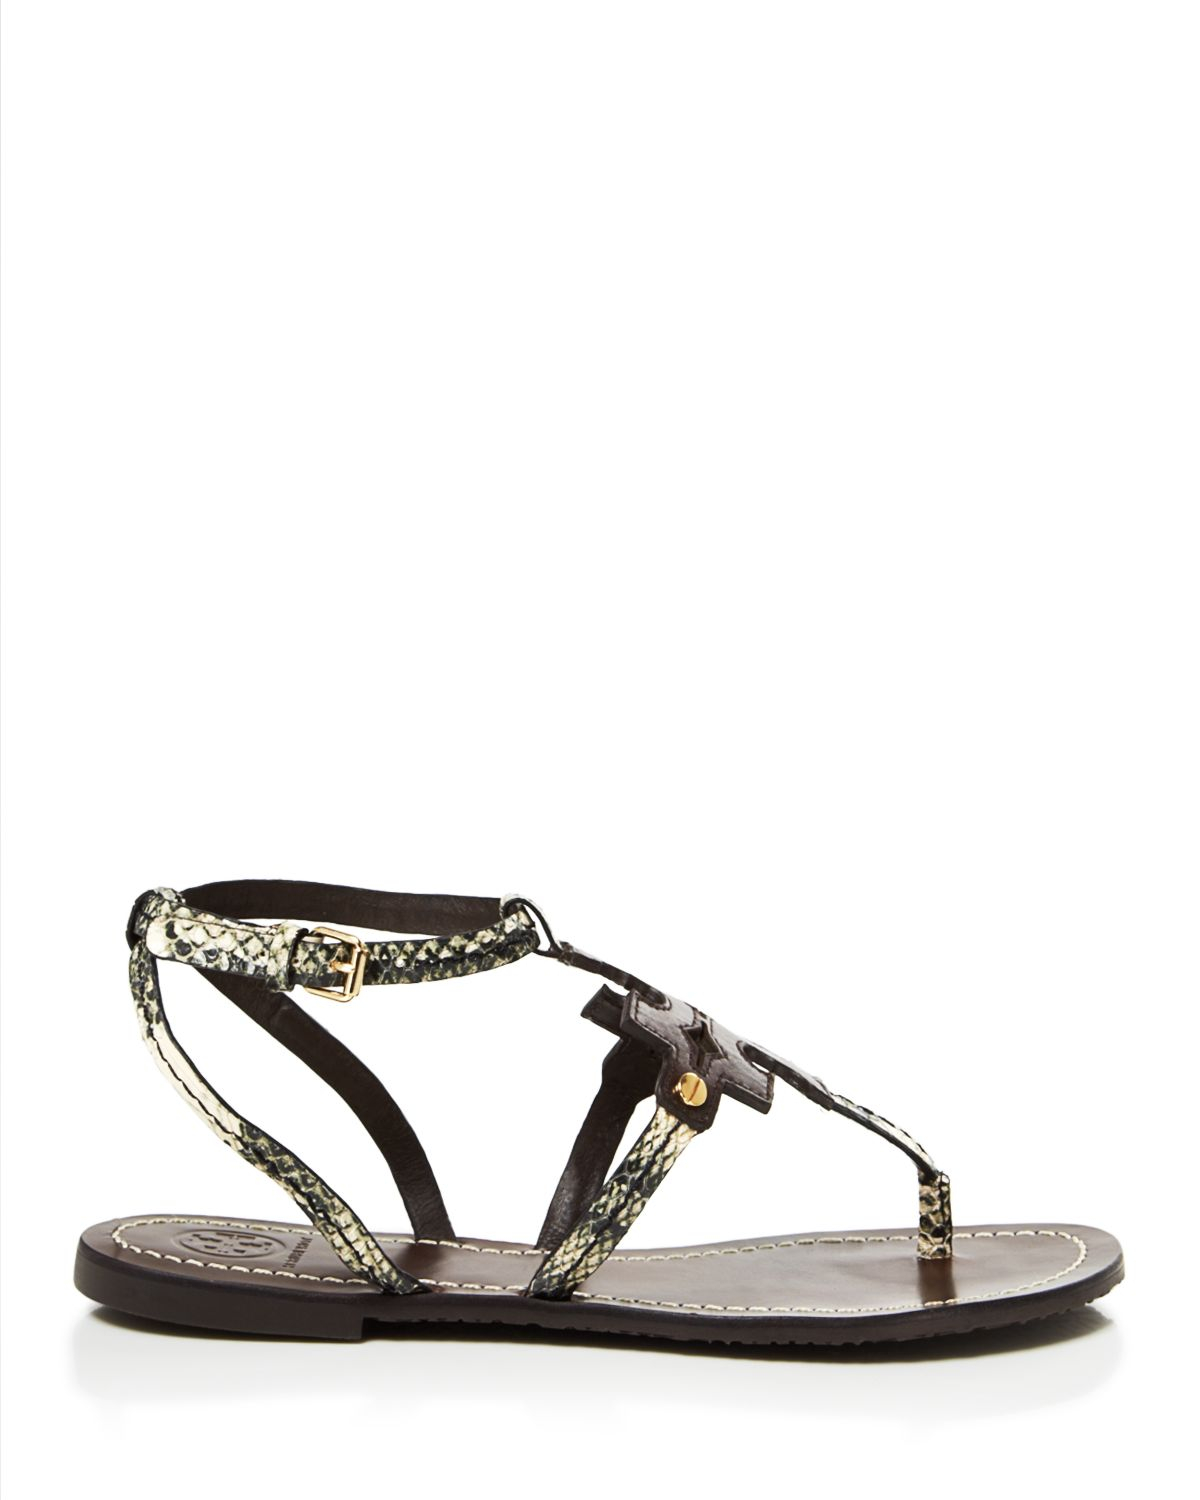 ecdda77942a discount tory burch phoebe sandals 872b5 2f692  canada lyst tory burch flat  thong sandals chandler in black b9b80 b23b9